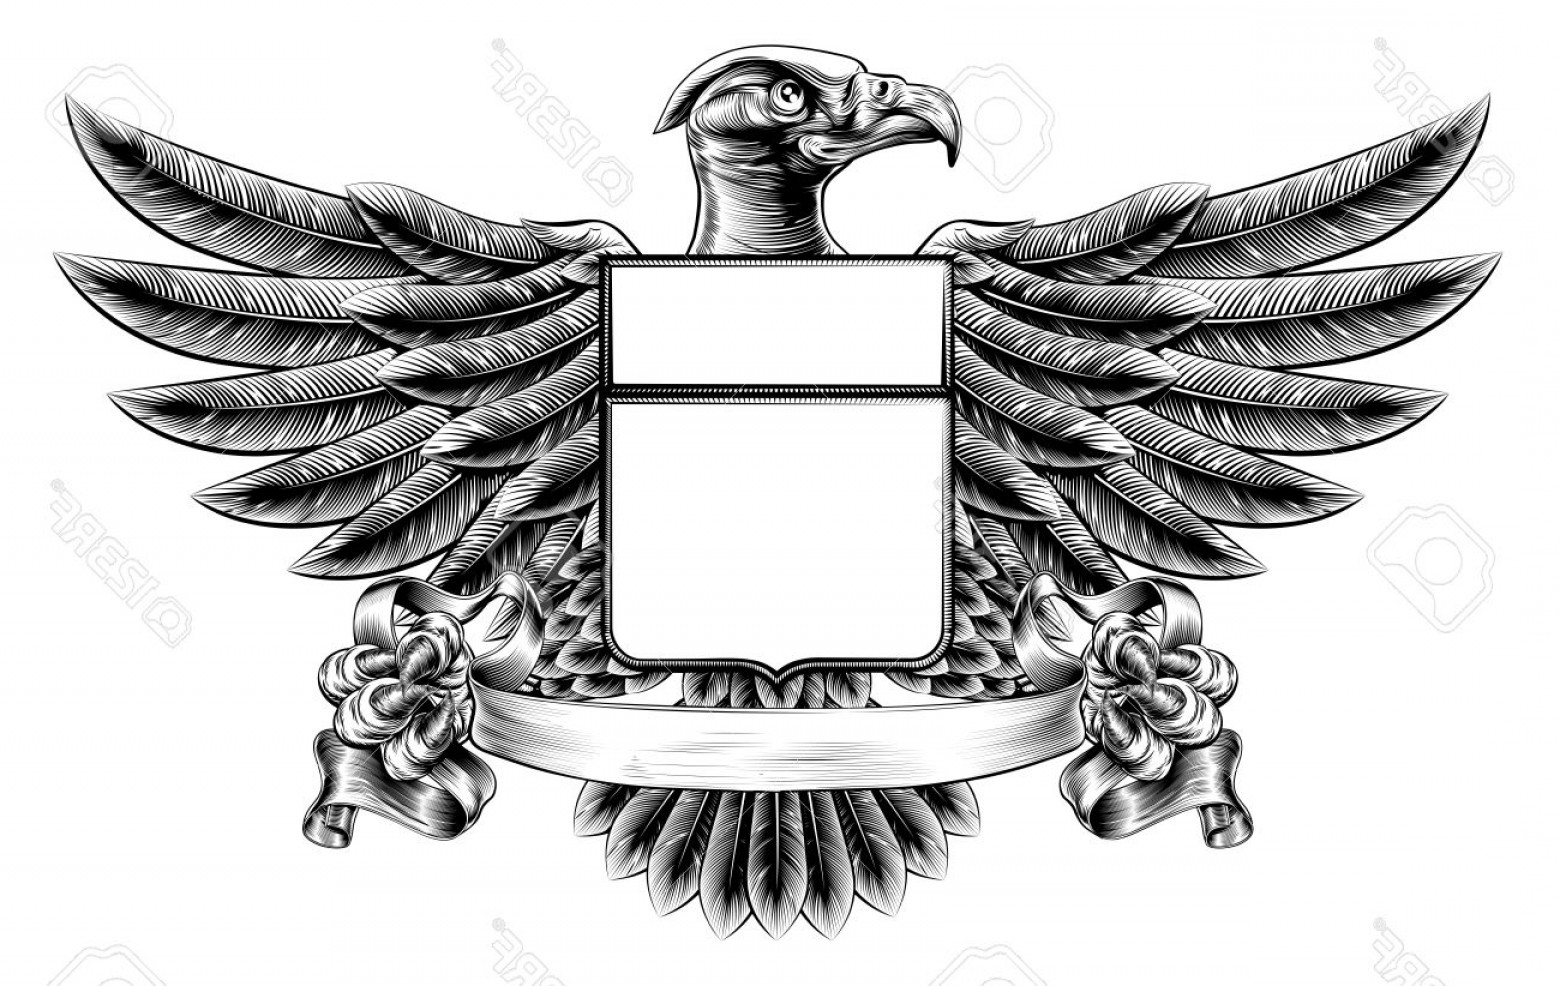 Eagle Banner Vector: Photostock Vector Vintage Woodcut Or Woodblock Style Wing Shield Eagle Insignia Motif Holding A Banner Scroll In His C